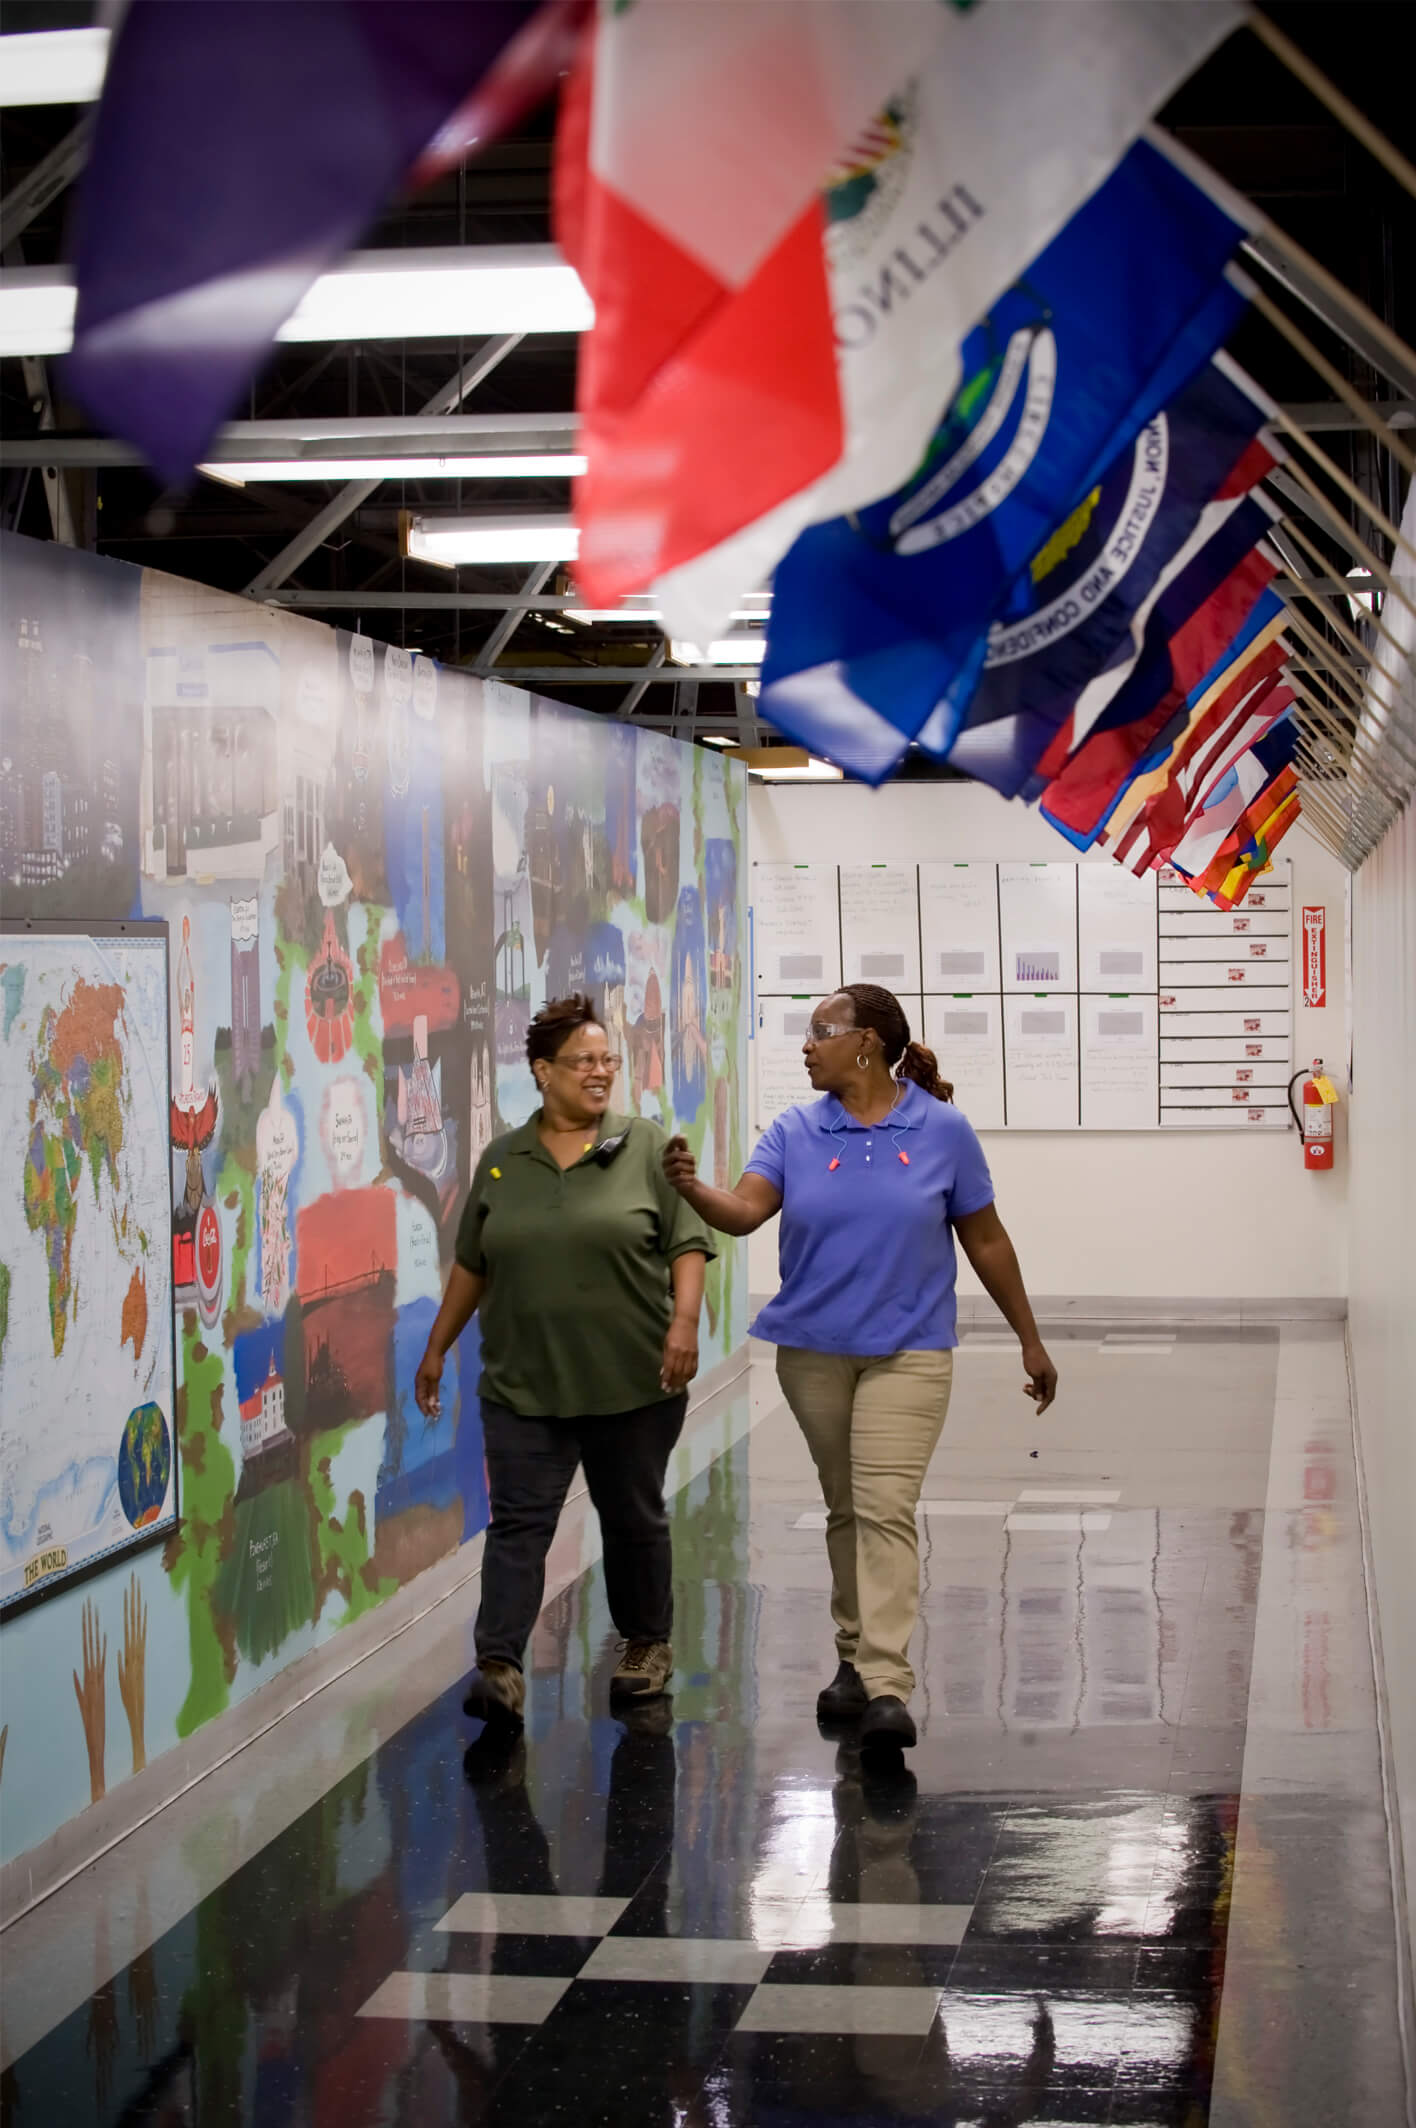 Two women walking down a hallway with national flags hanging from the wall.